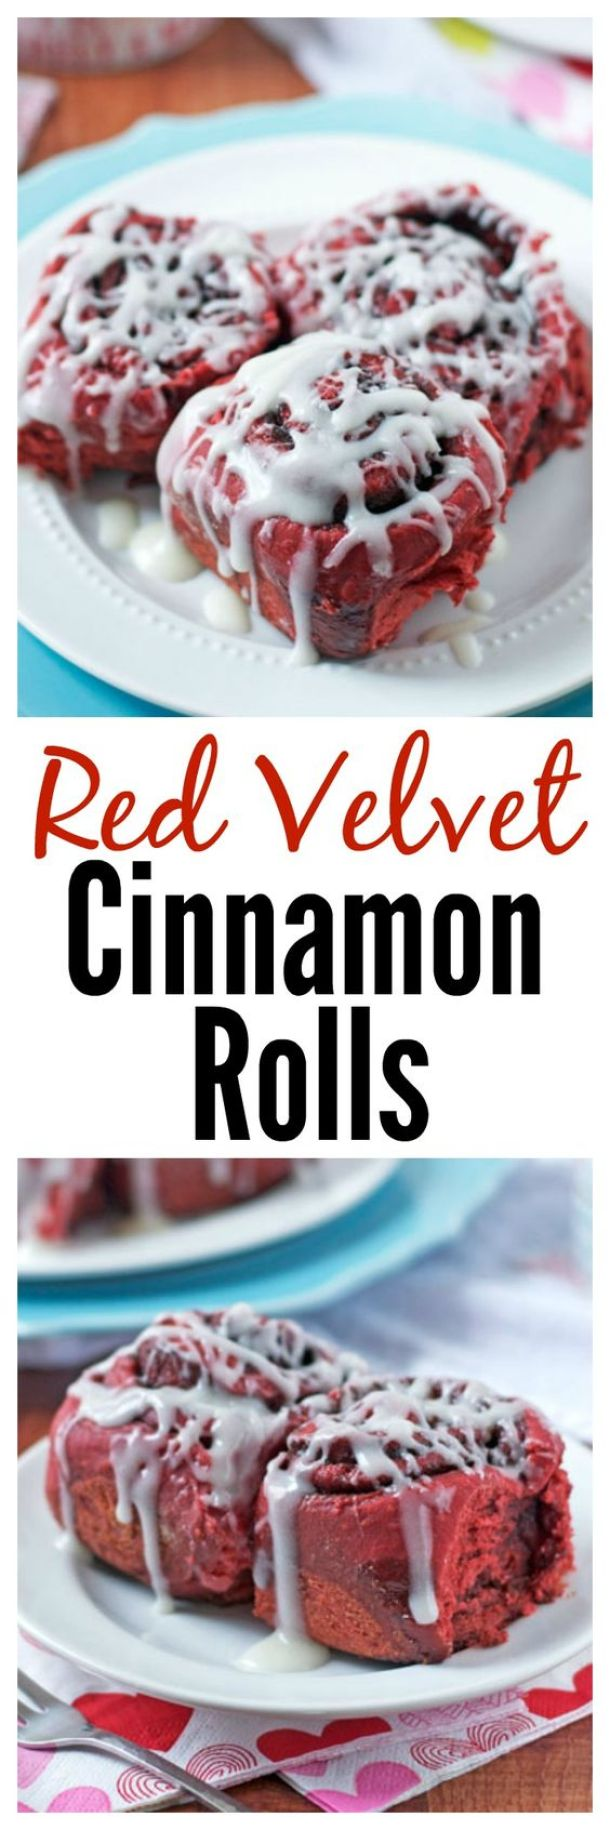 Red Velvet Cinnamon Rolls Recipe - Perfect for Valentine's Day or Christmas Morning! | Well Plated by Erin